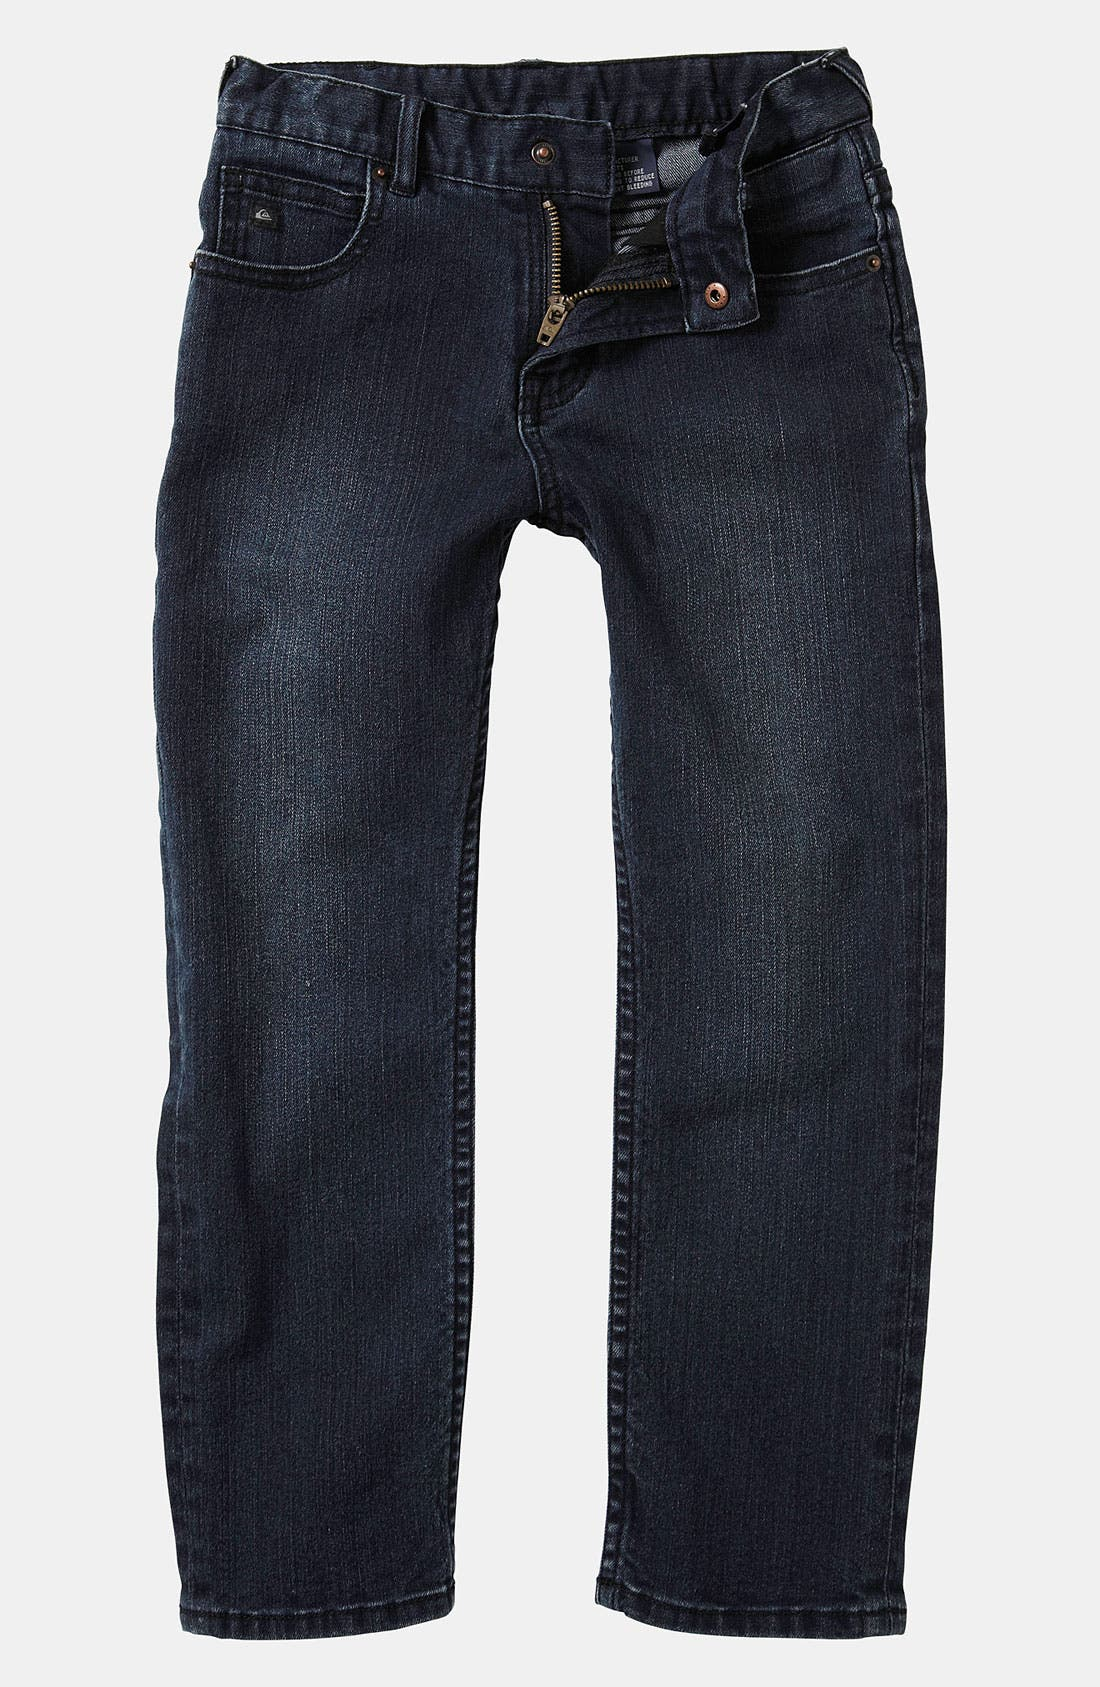 Alternate Image 1 Selected - Quiksilver 'Distortion' Jeans (Infant)